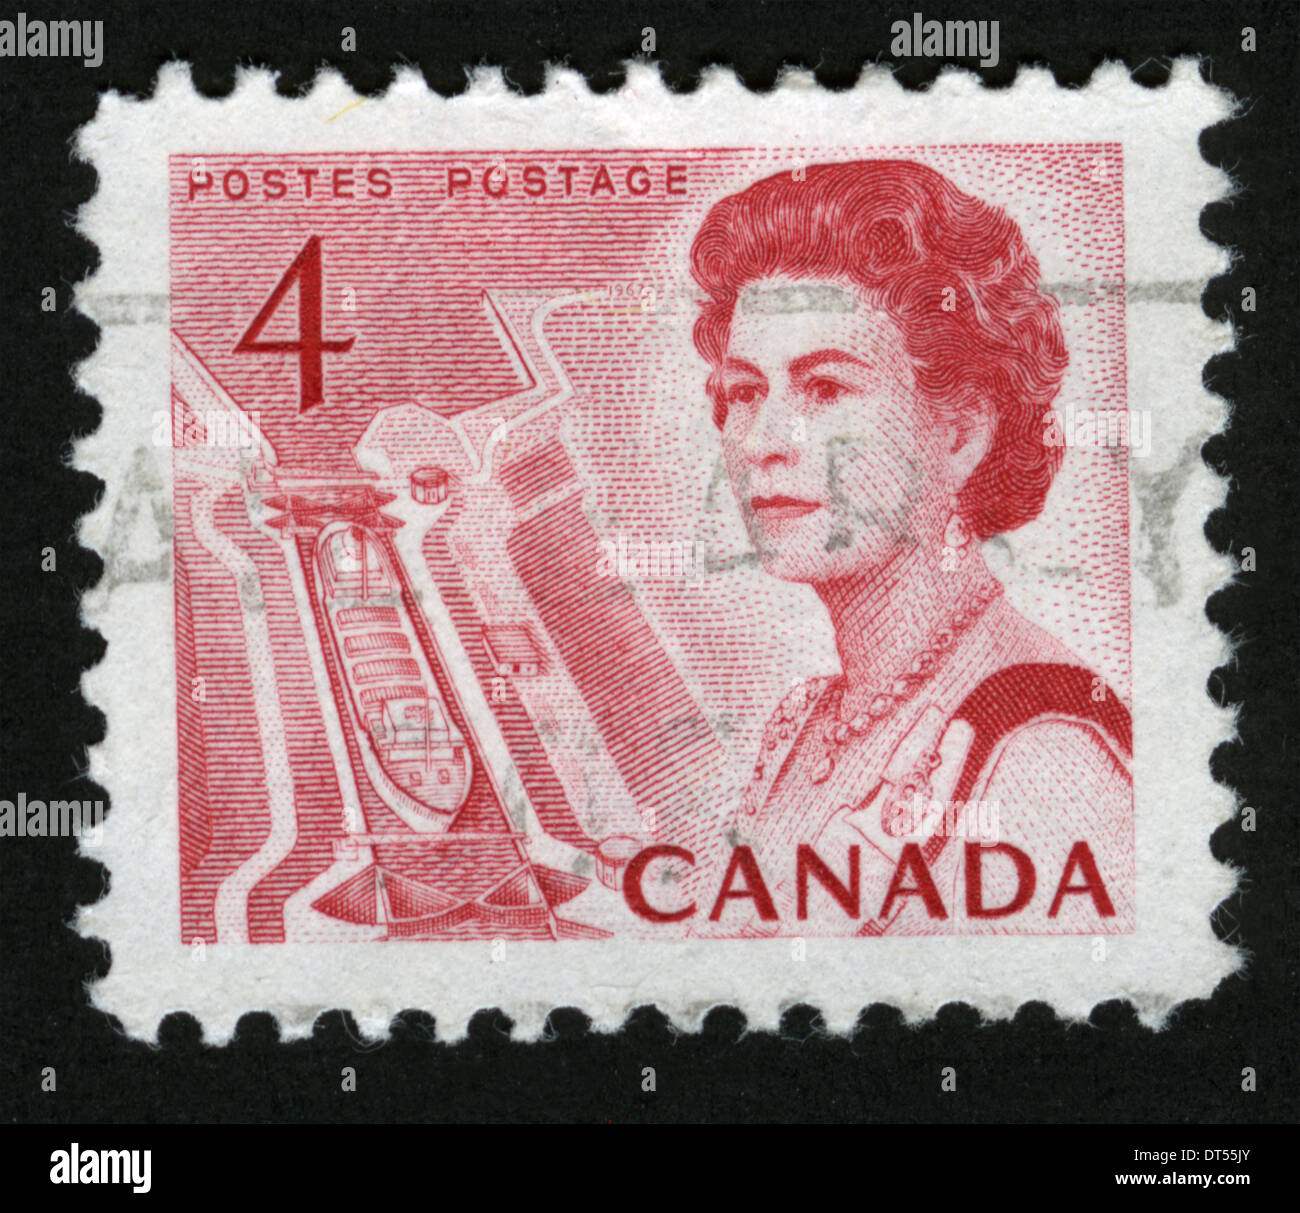 Canada Postage Stamp Post Mark Stamp Post Stamp Queen Elizabeth